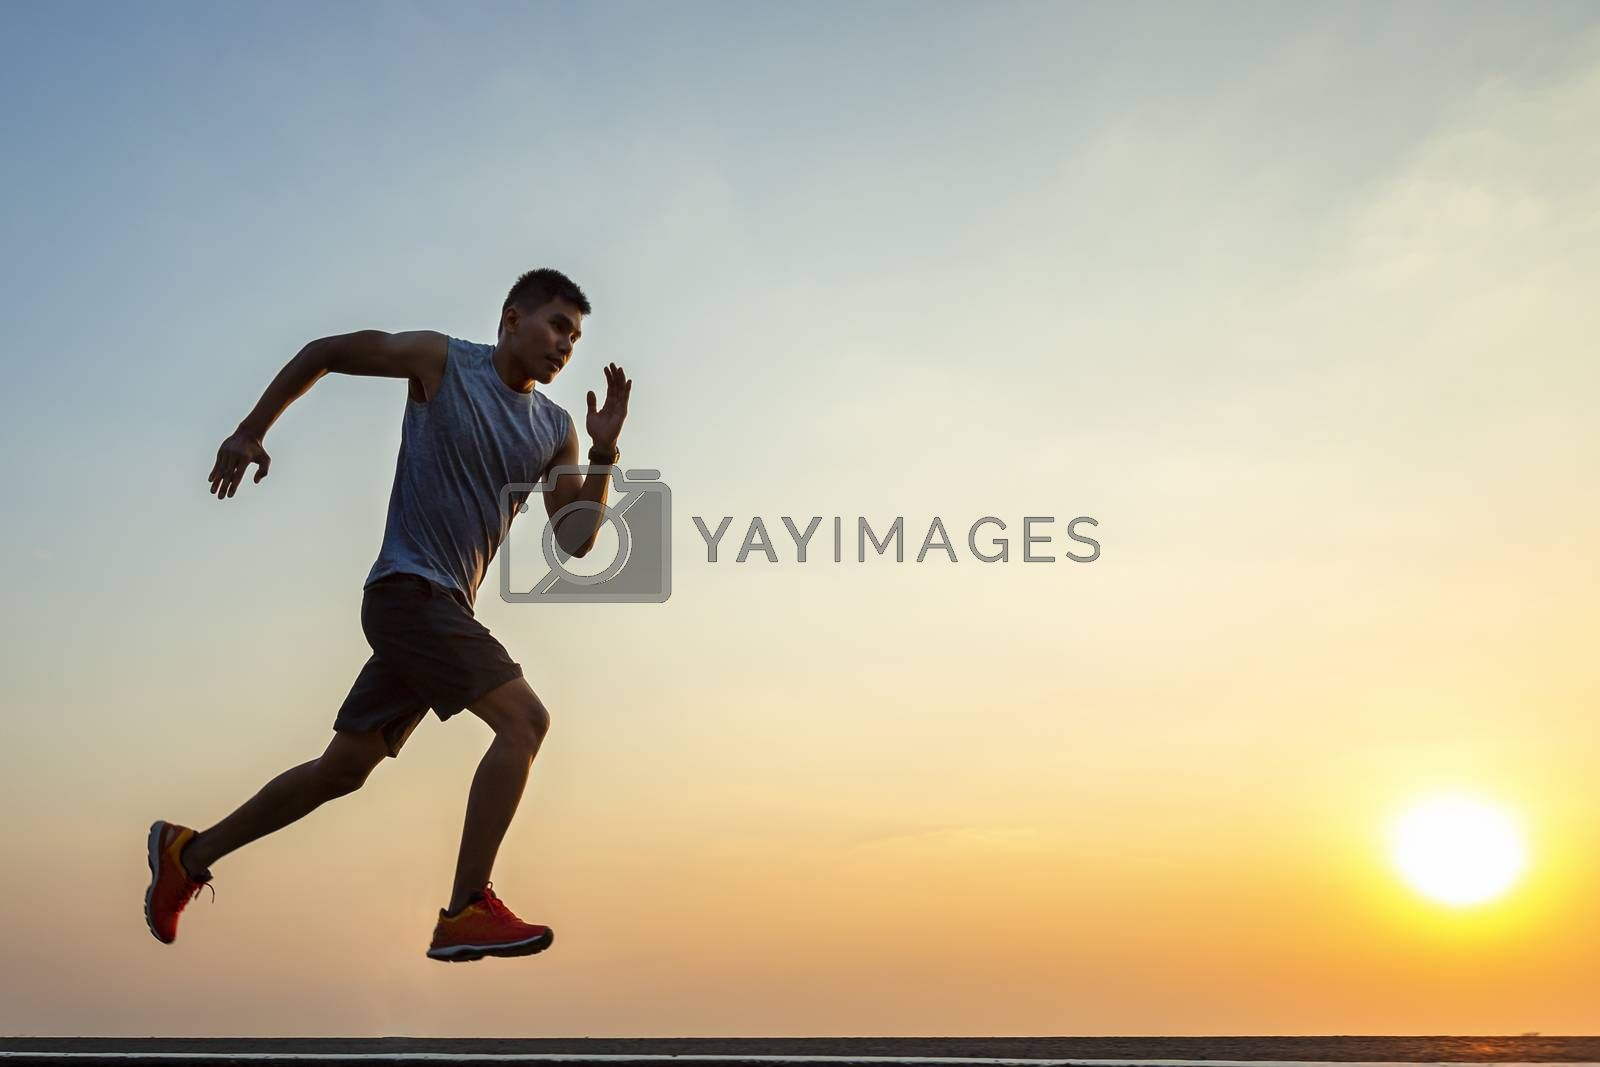 The silhouette of young men running and exercising at sunset with the sun in the background, colorful sunset sky